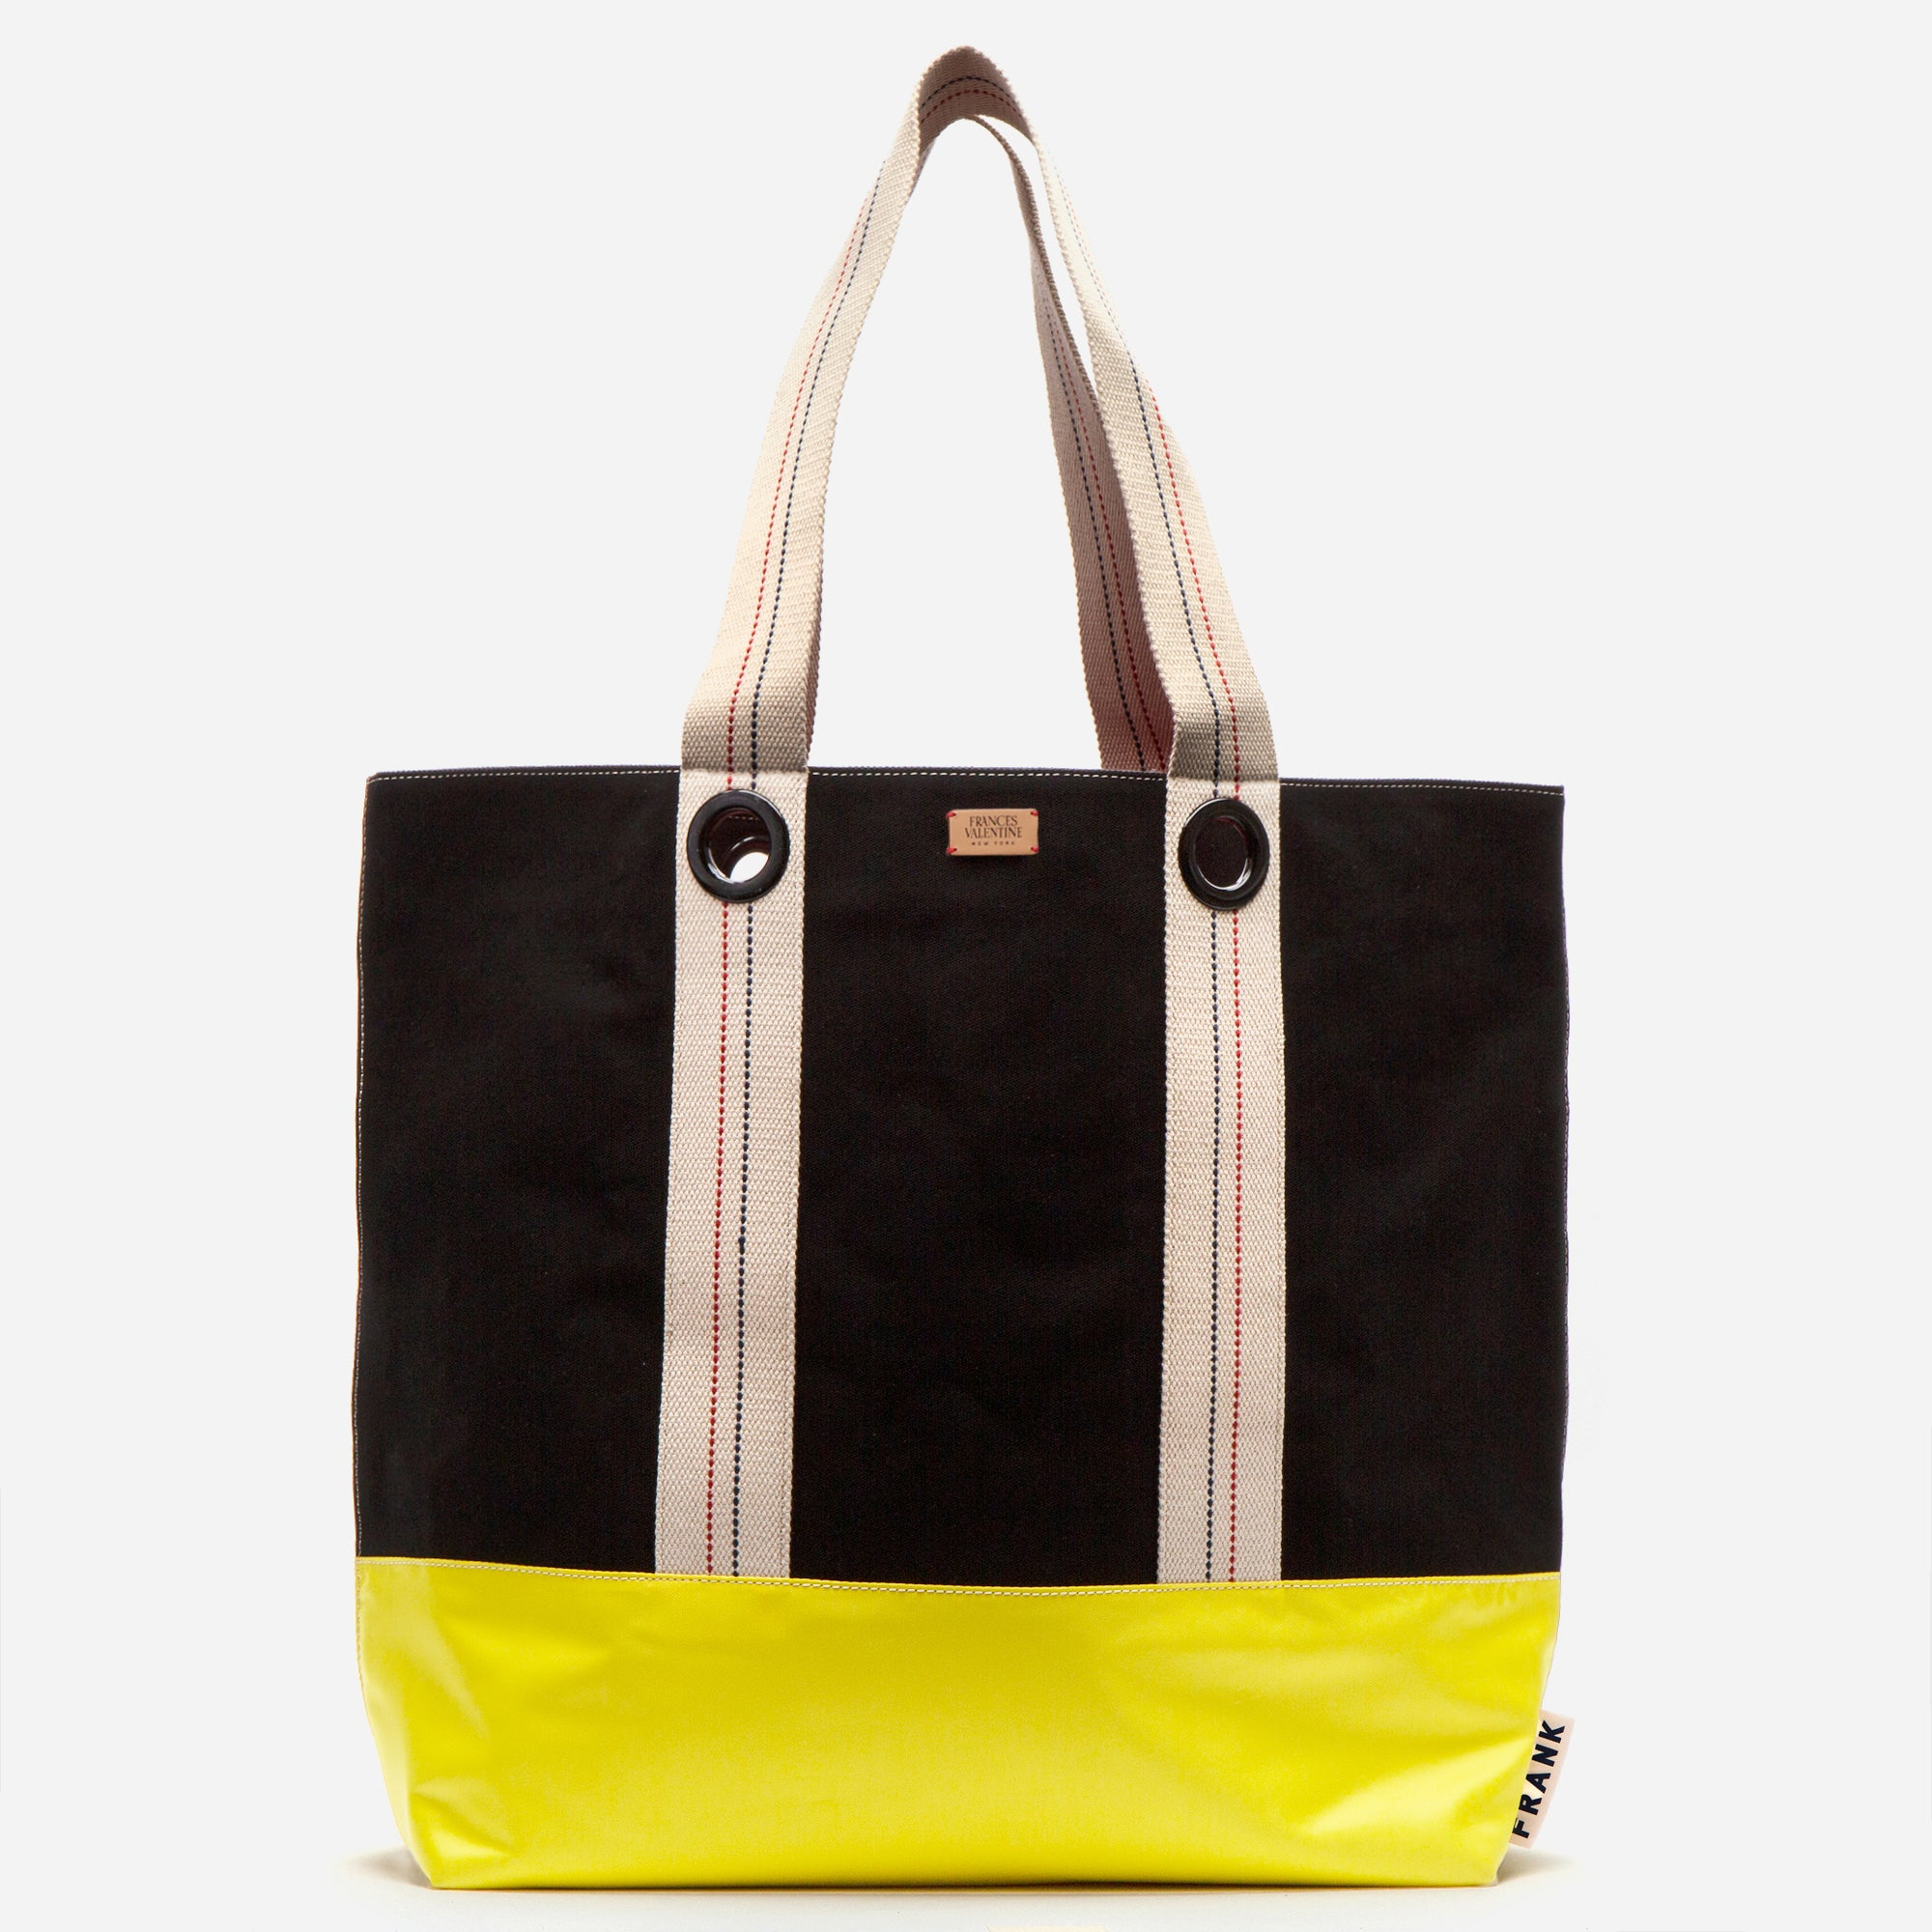 Frank Men's XL Canvas Tote Black Yellow - Frances Valentine